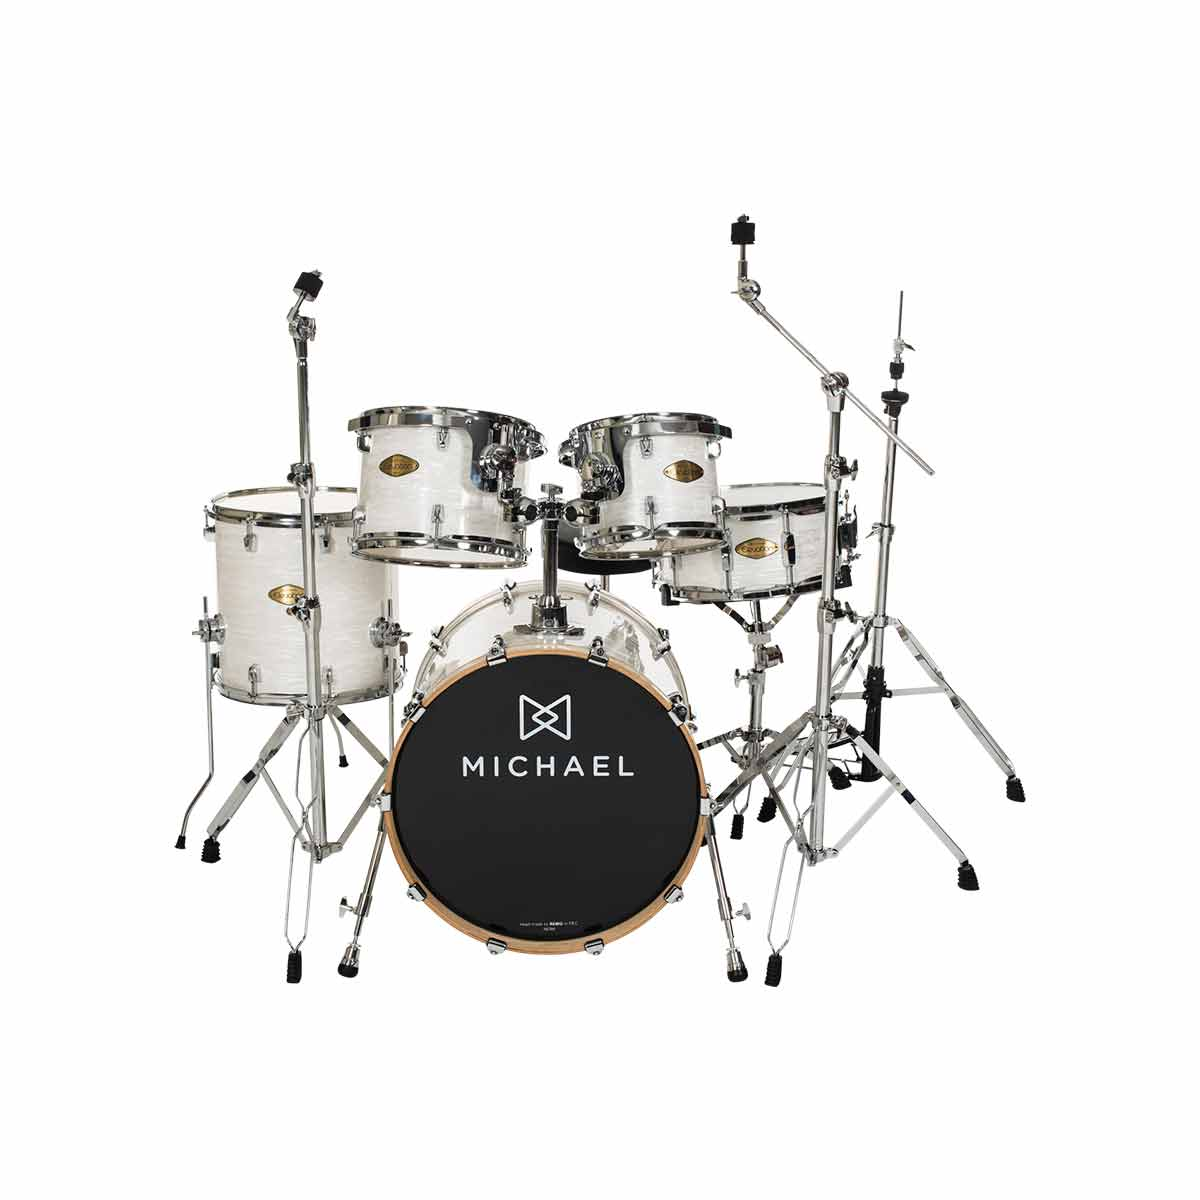 Bateria Ac�stica Bumbo 18 Polegadas Elevation DM851 MP Madrep�rola - Michael